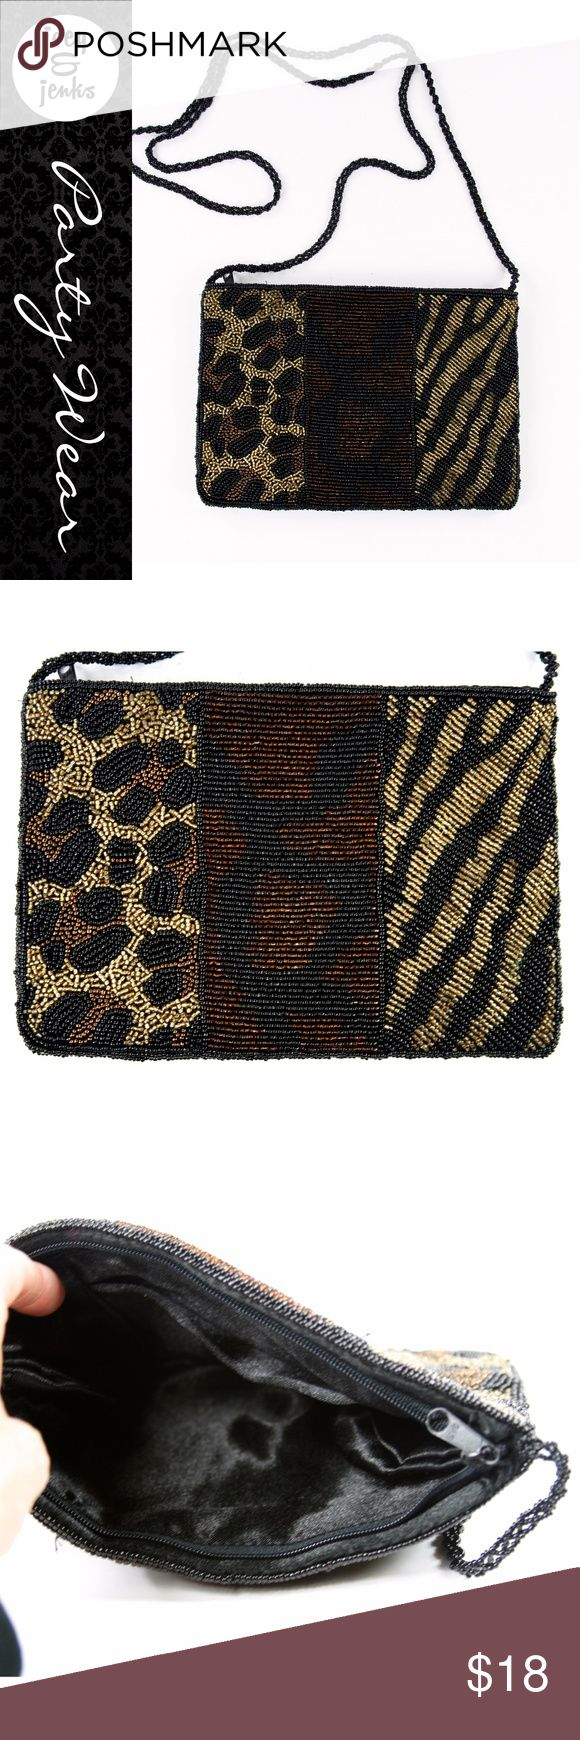 "Beaded Small Leopard Purse A standout for a special occasion! Excellent condition with little to no wear. This purse could go casual or dress. It's small to carry a phone, lipstick, makeup, etc. ● Width 8"", Height 5 1/2"", Strap 24"" (from purse to top). ● Outside made of beads. Inside is satin. ● Bundle 2 or more items for 15% off. Free shipping for orders over $100. Smoke-free home and fast shipper! Bags Mini Bags"